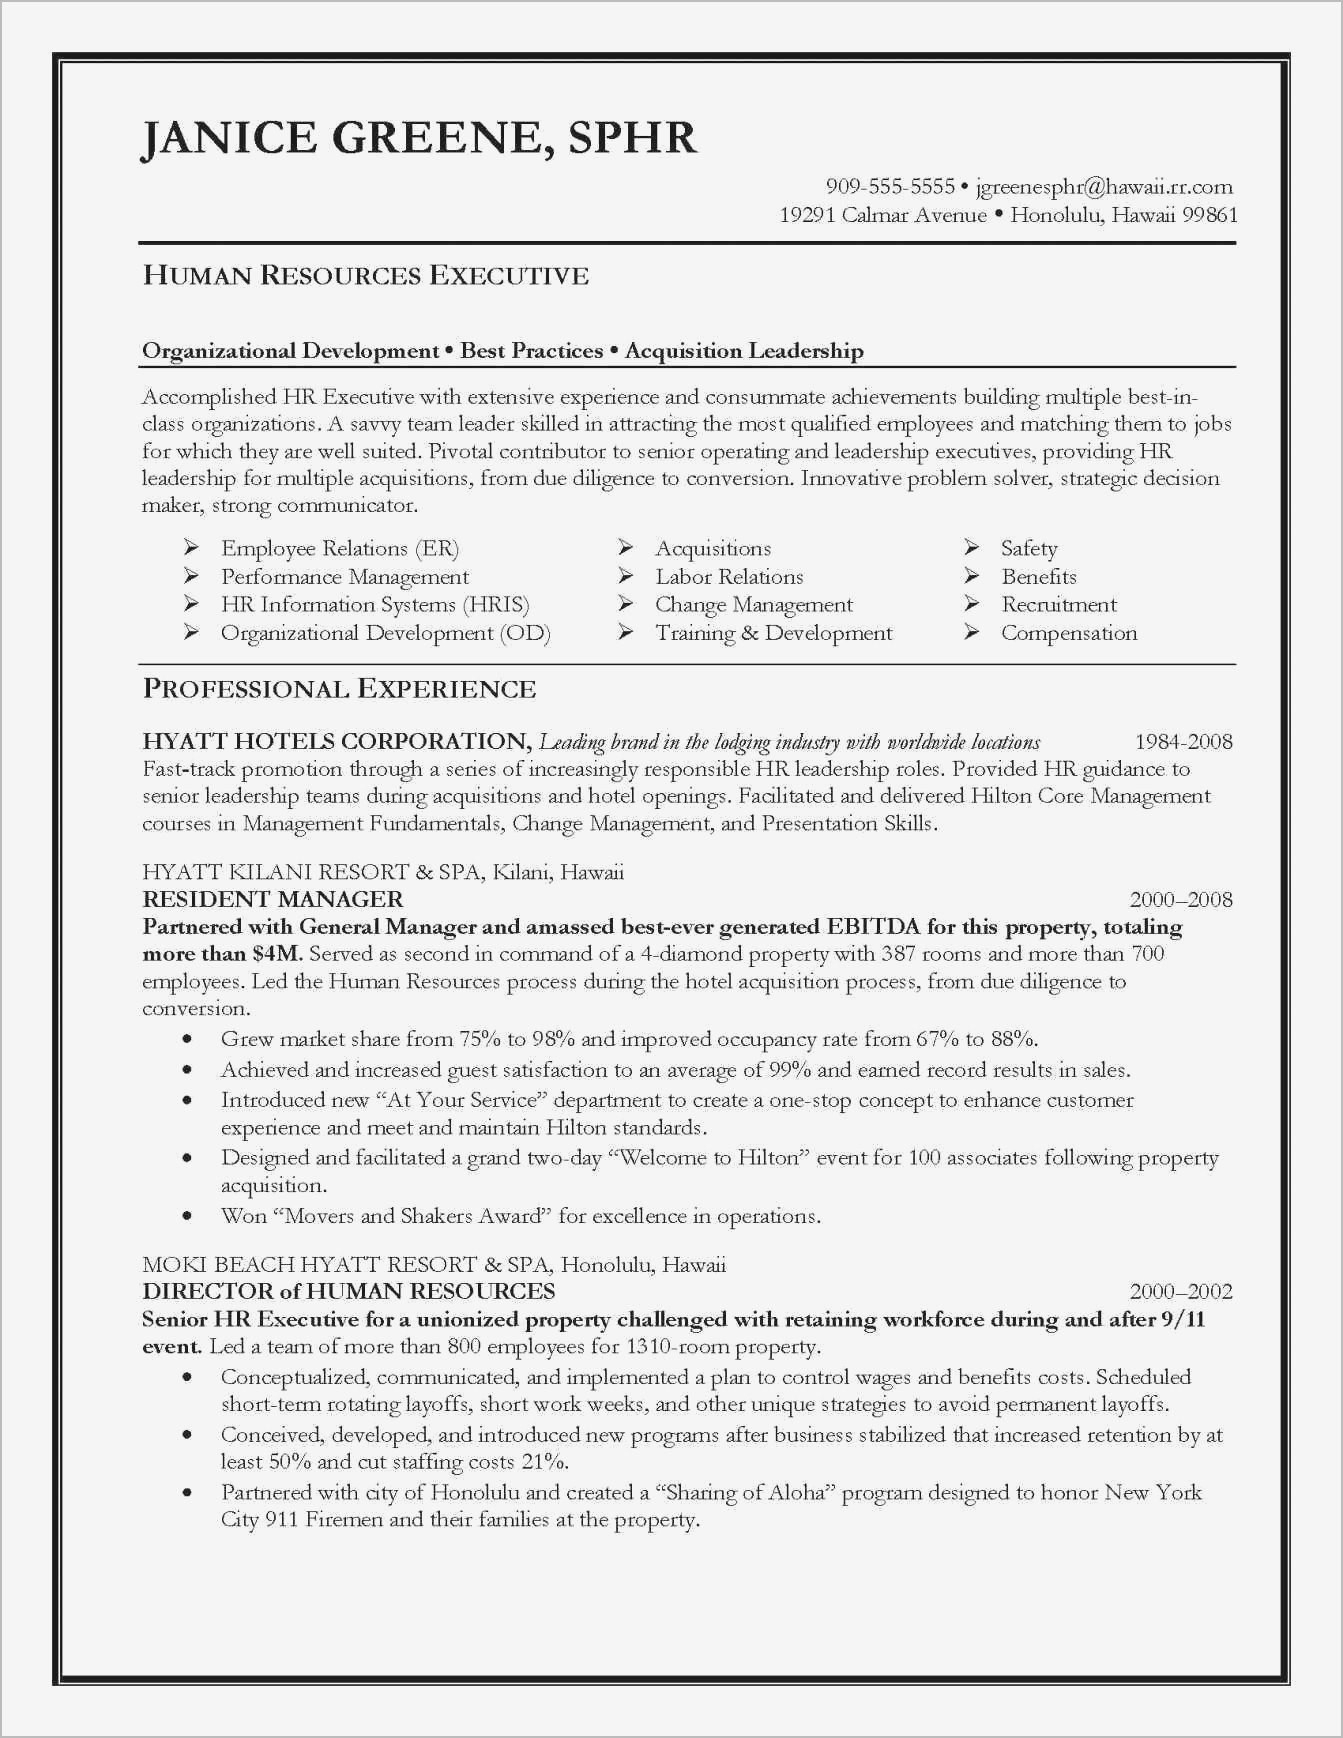 Resume Writing Service Reviews - top Resume Writing Services Reviews Reference Best Resume Writing